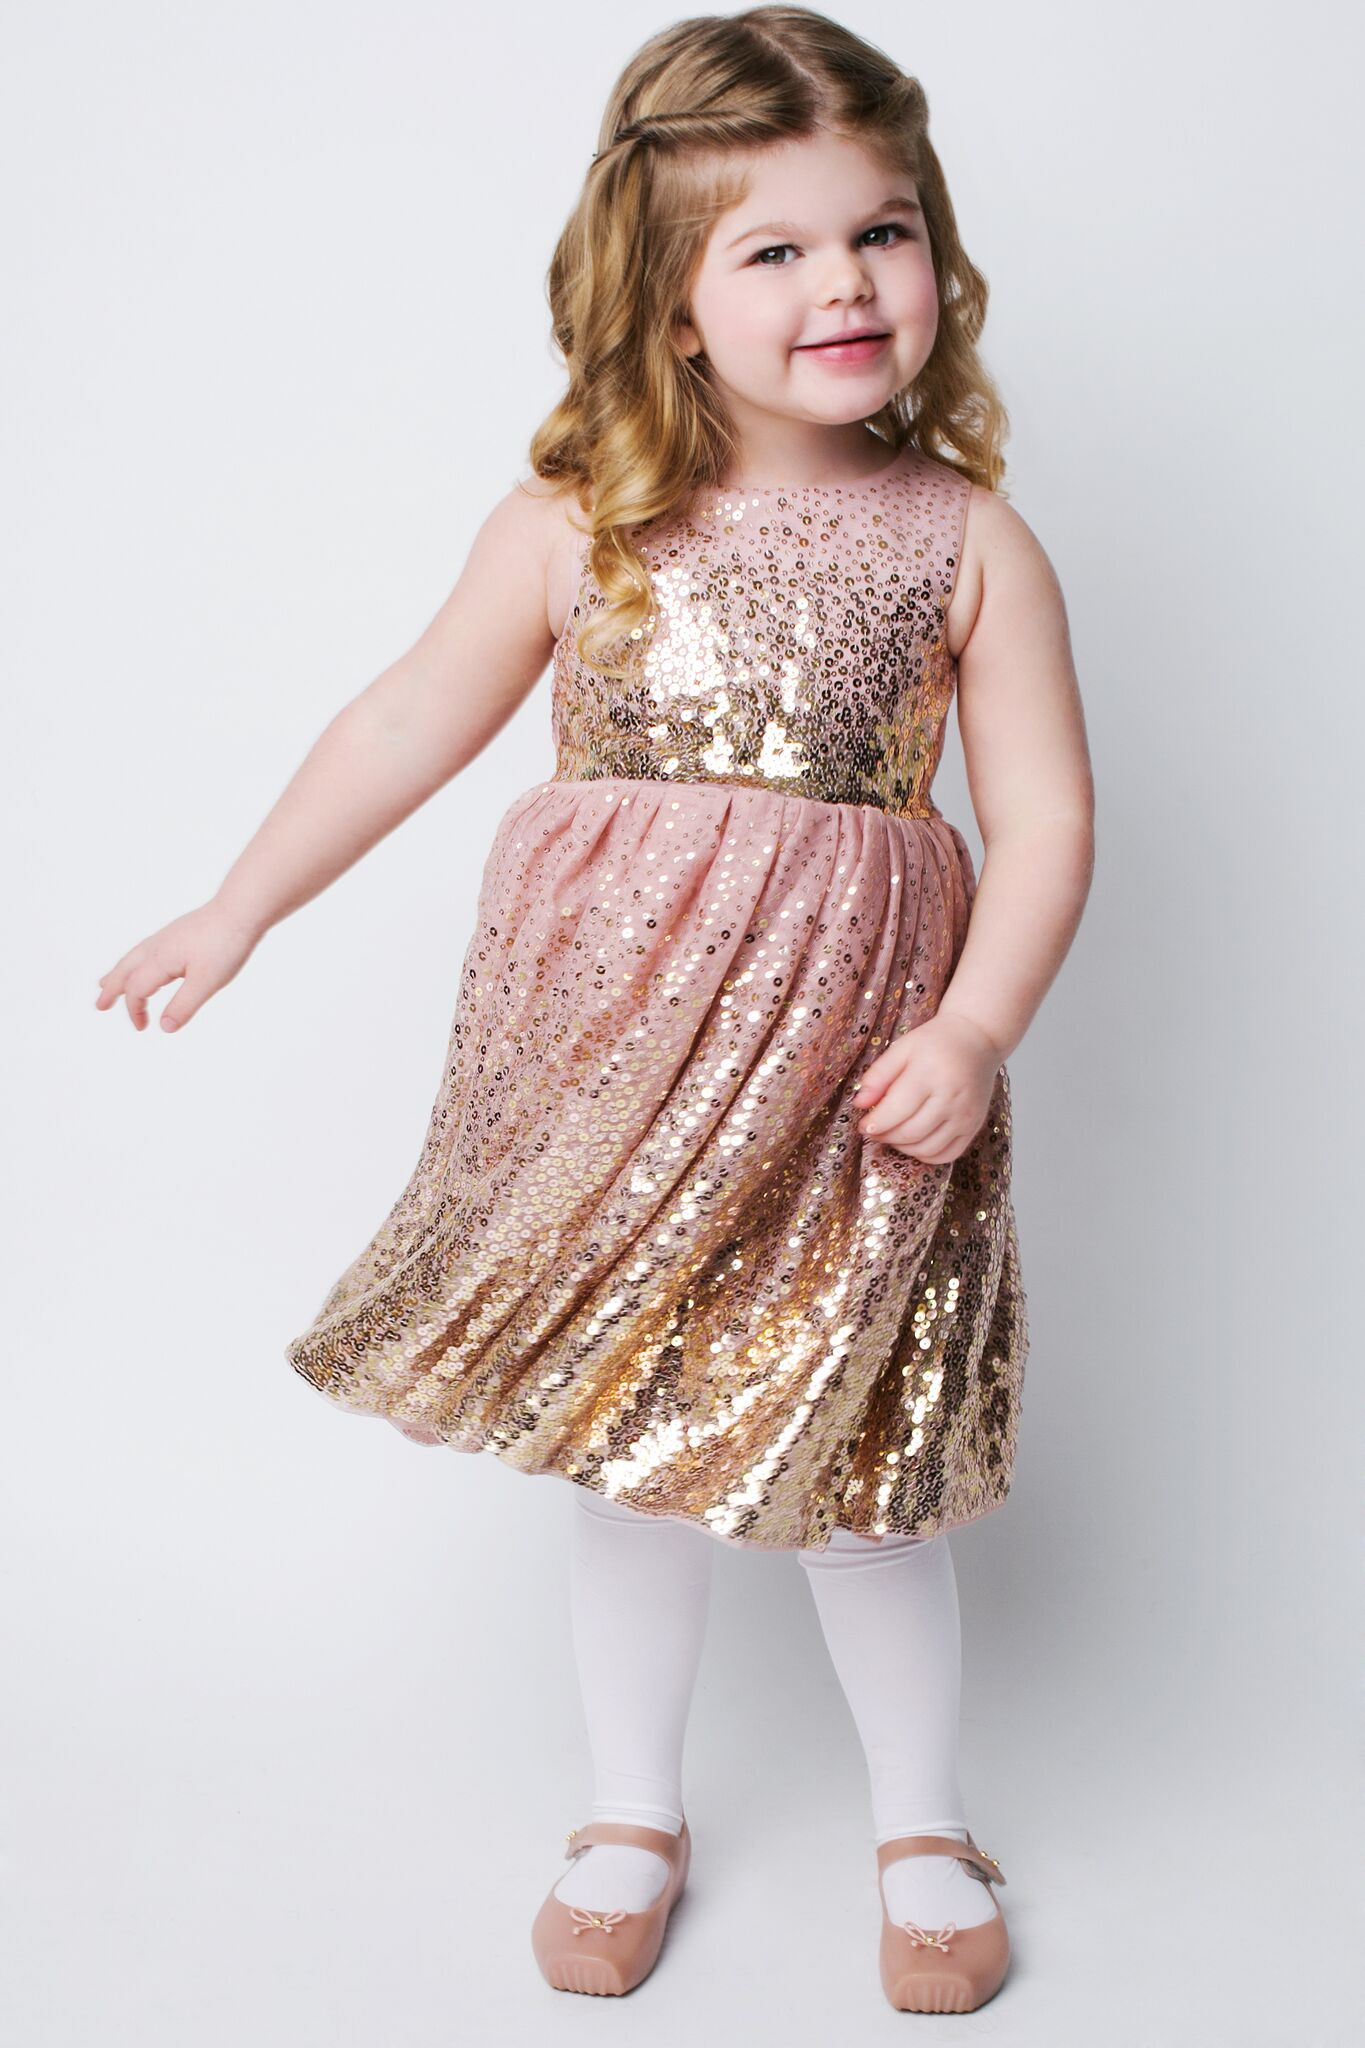 My daughter, she's all about sparkles and pink!